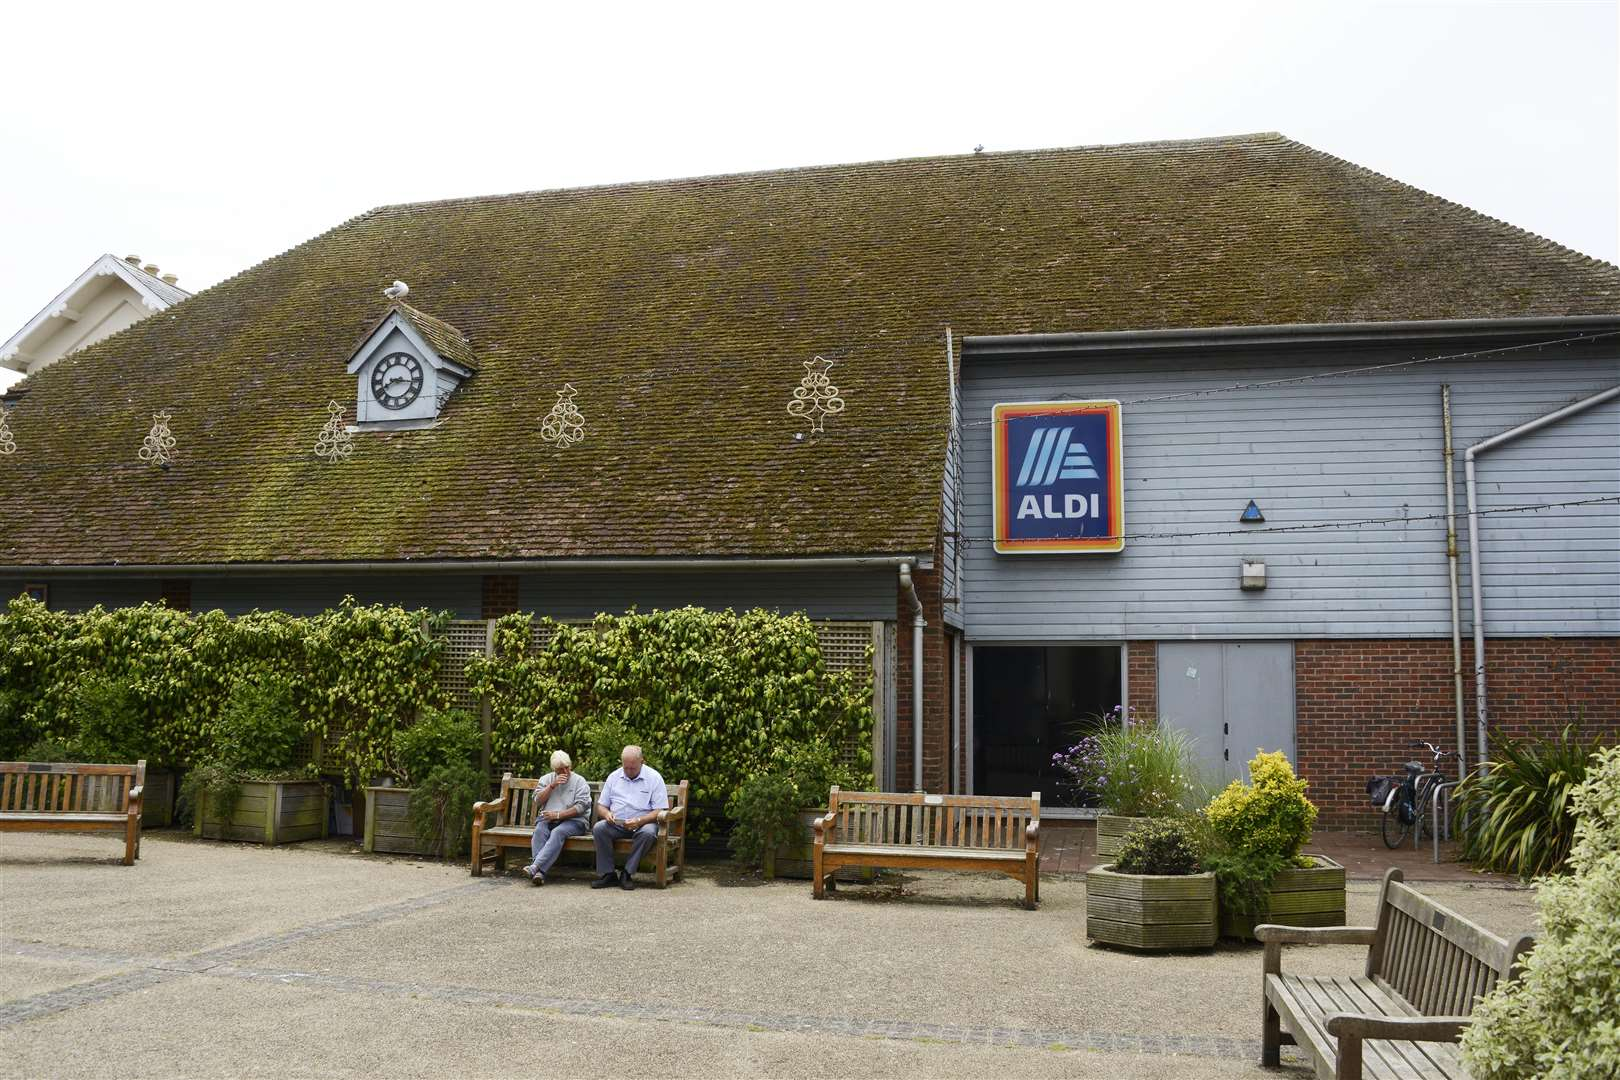 Aldi's current store in Hythe